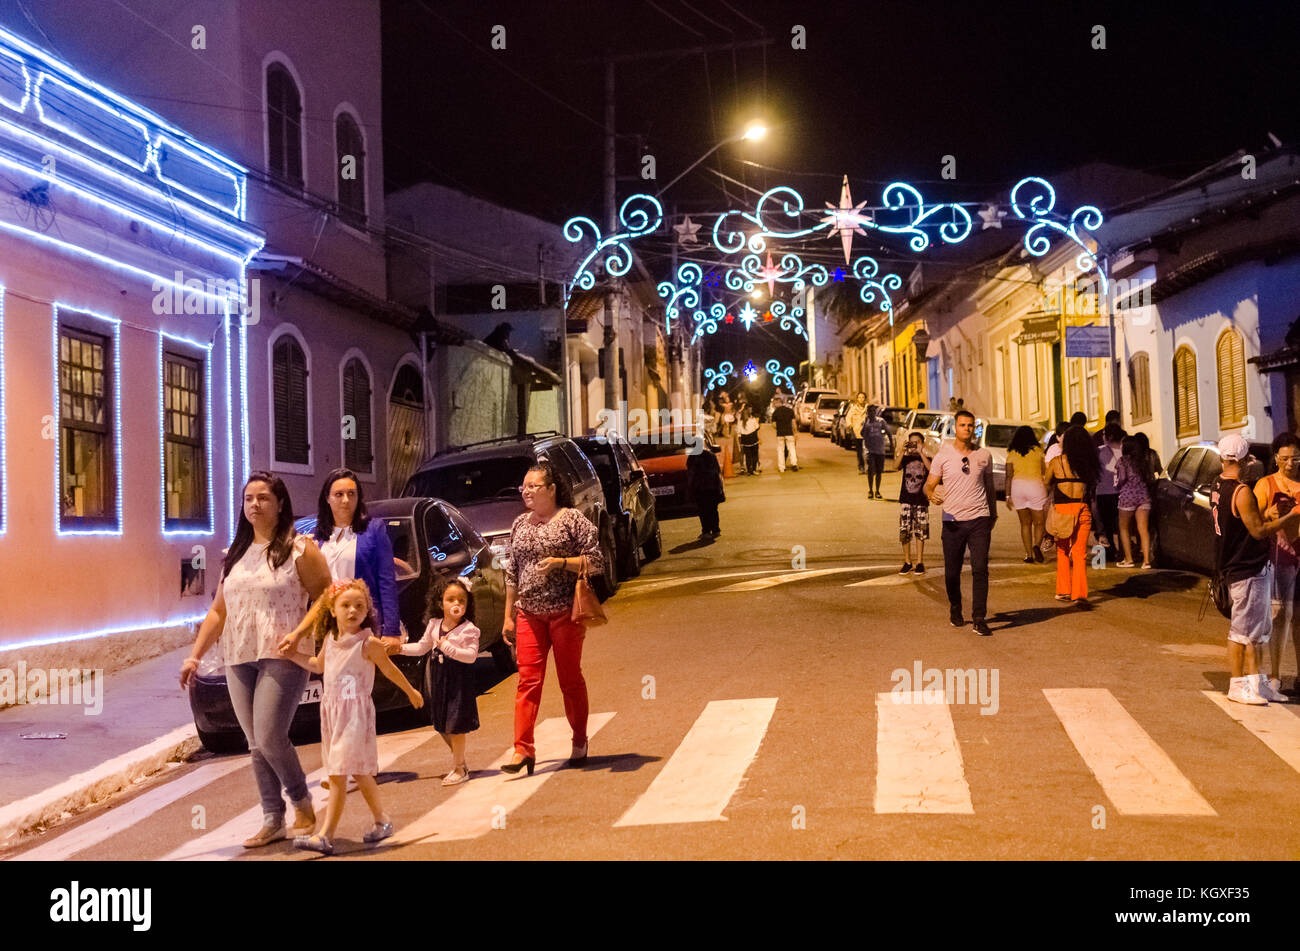 Sao Paulo, Brazil, December 17, 2016: People observe the decoration of Christmas in a public square in the city - Stock Image